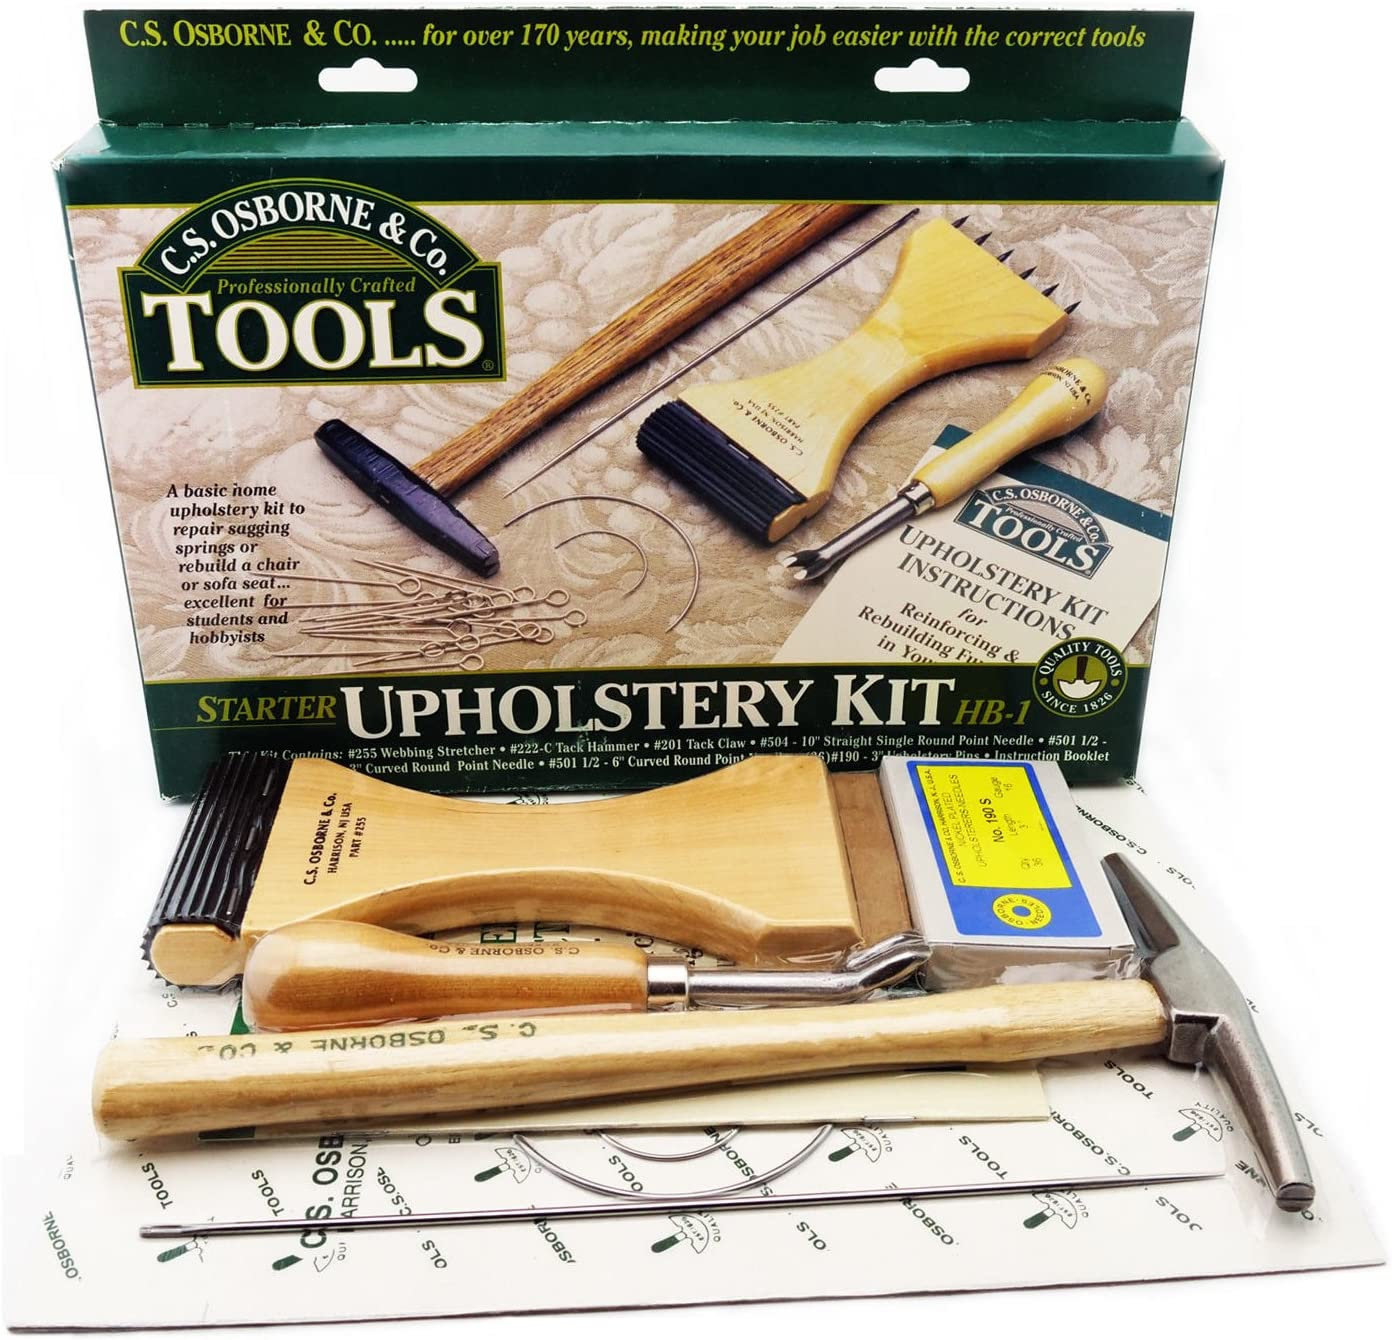 C.S. Osborne Starter Upholstery Kit HB-1 Professionally Crafted Tools